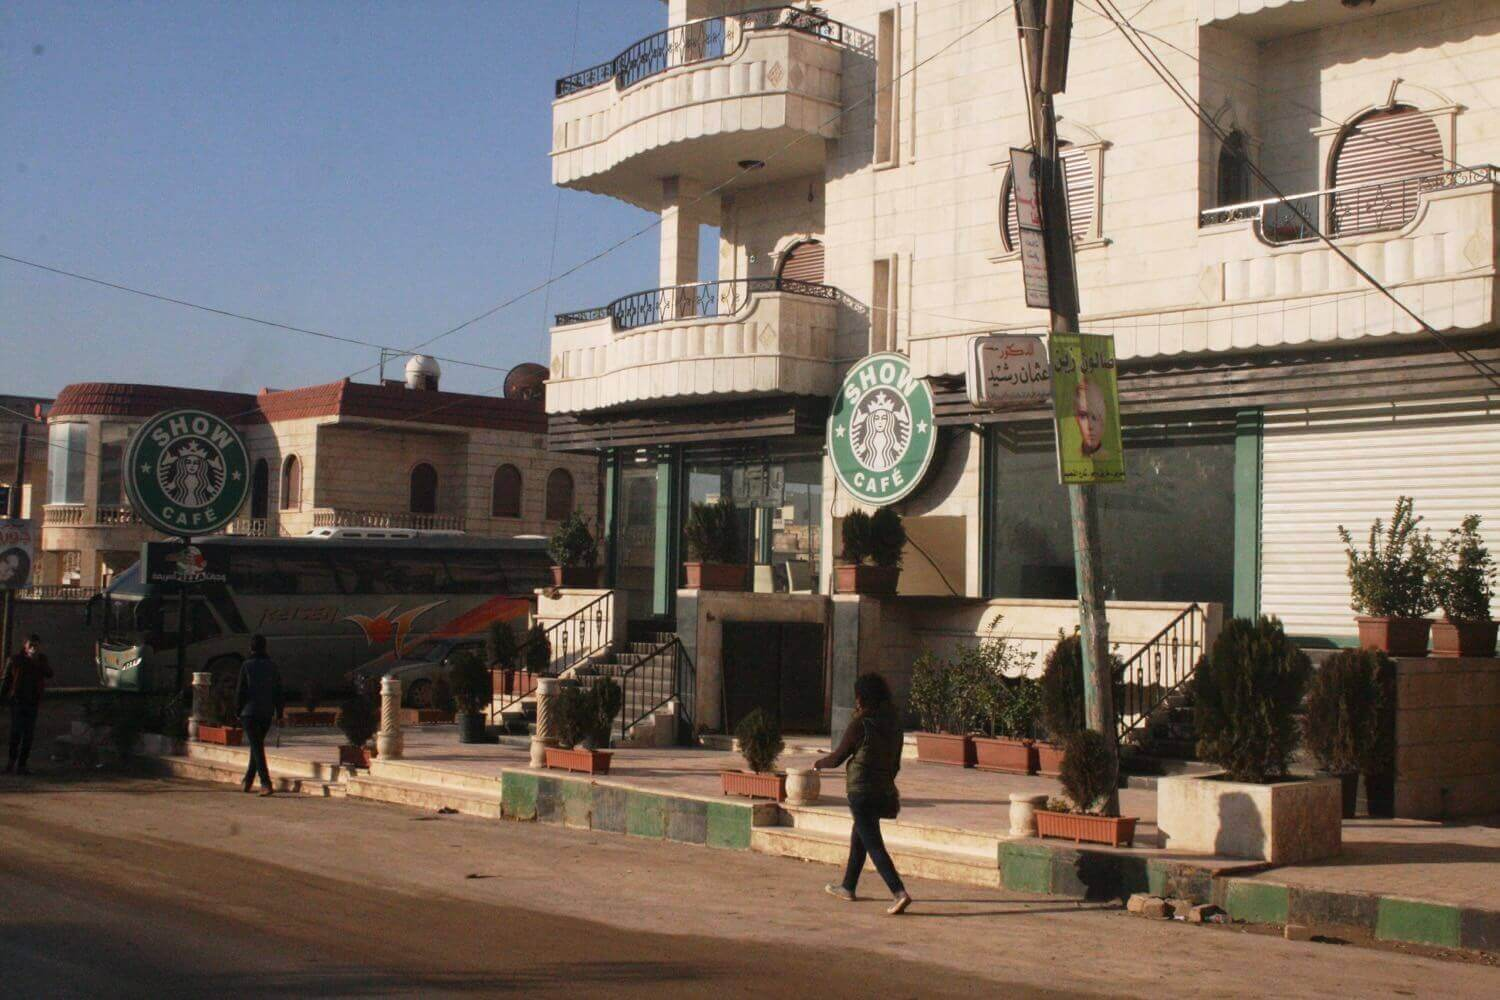 Coffee bar Efrîn, February 2, 2015